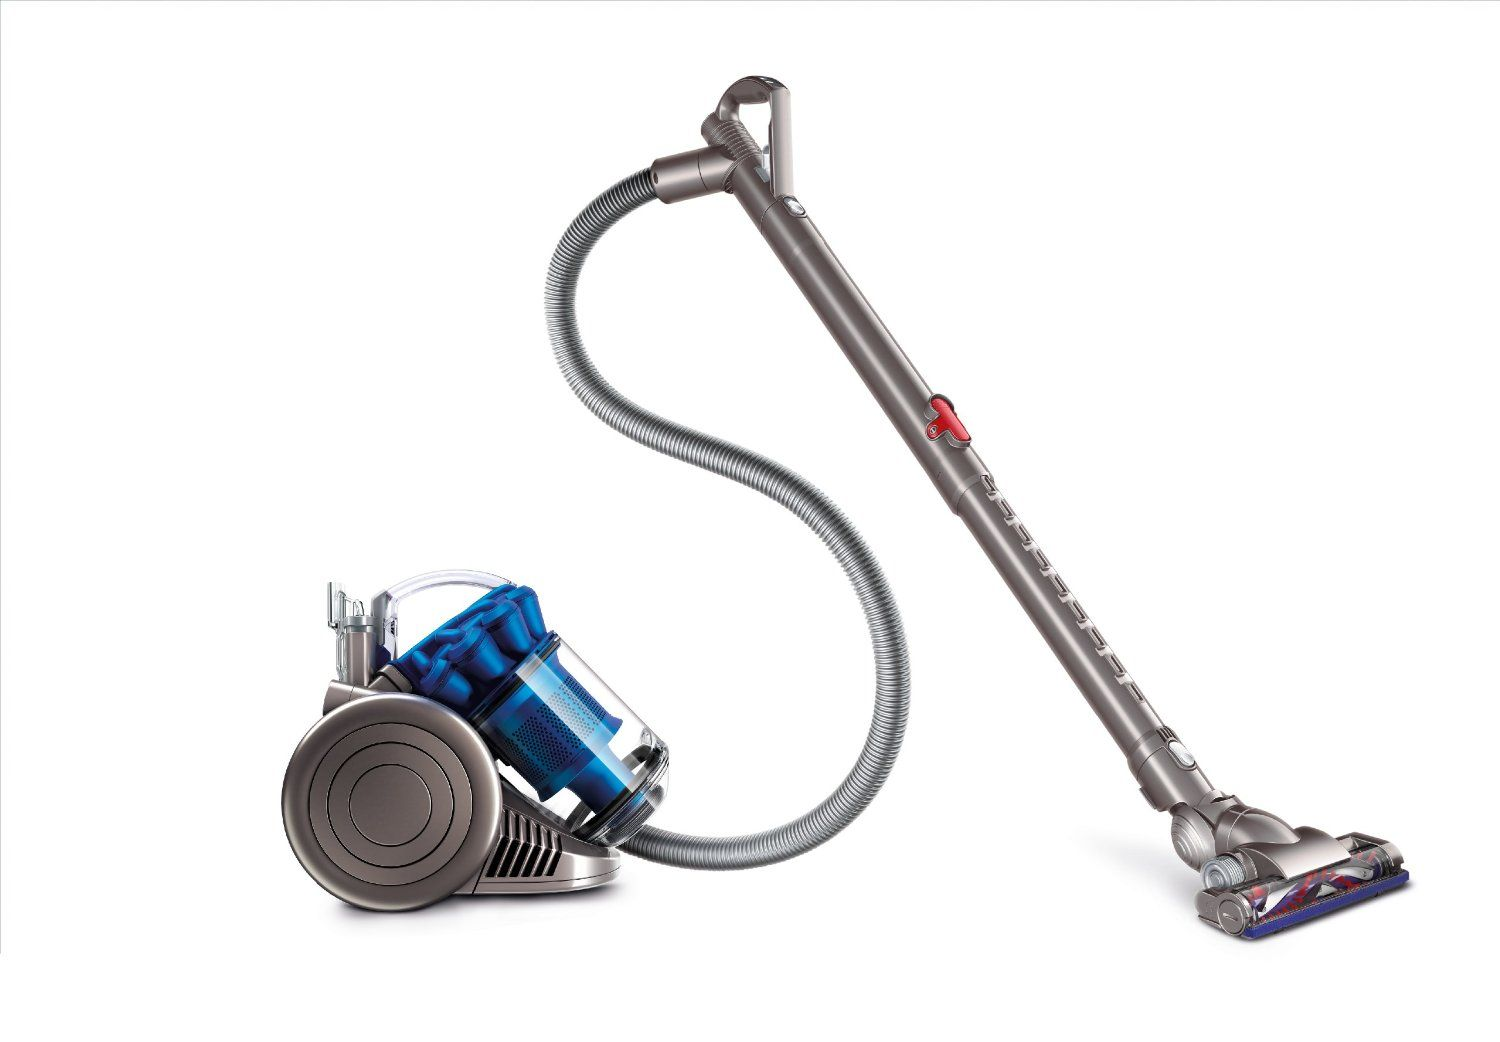 Dyson Canister Vacuum Google Search Dyson Vacuum Cleaner Vacuum For Hardwood Floors Vacuum Cleaner